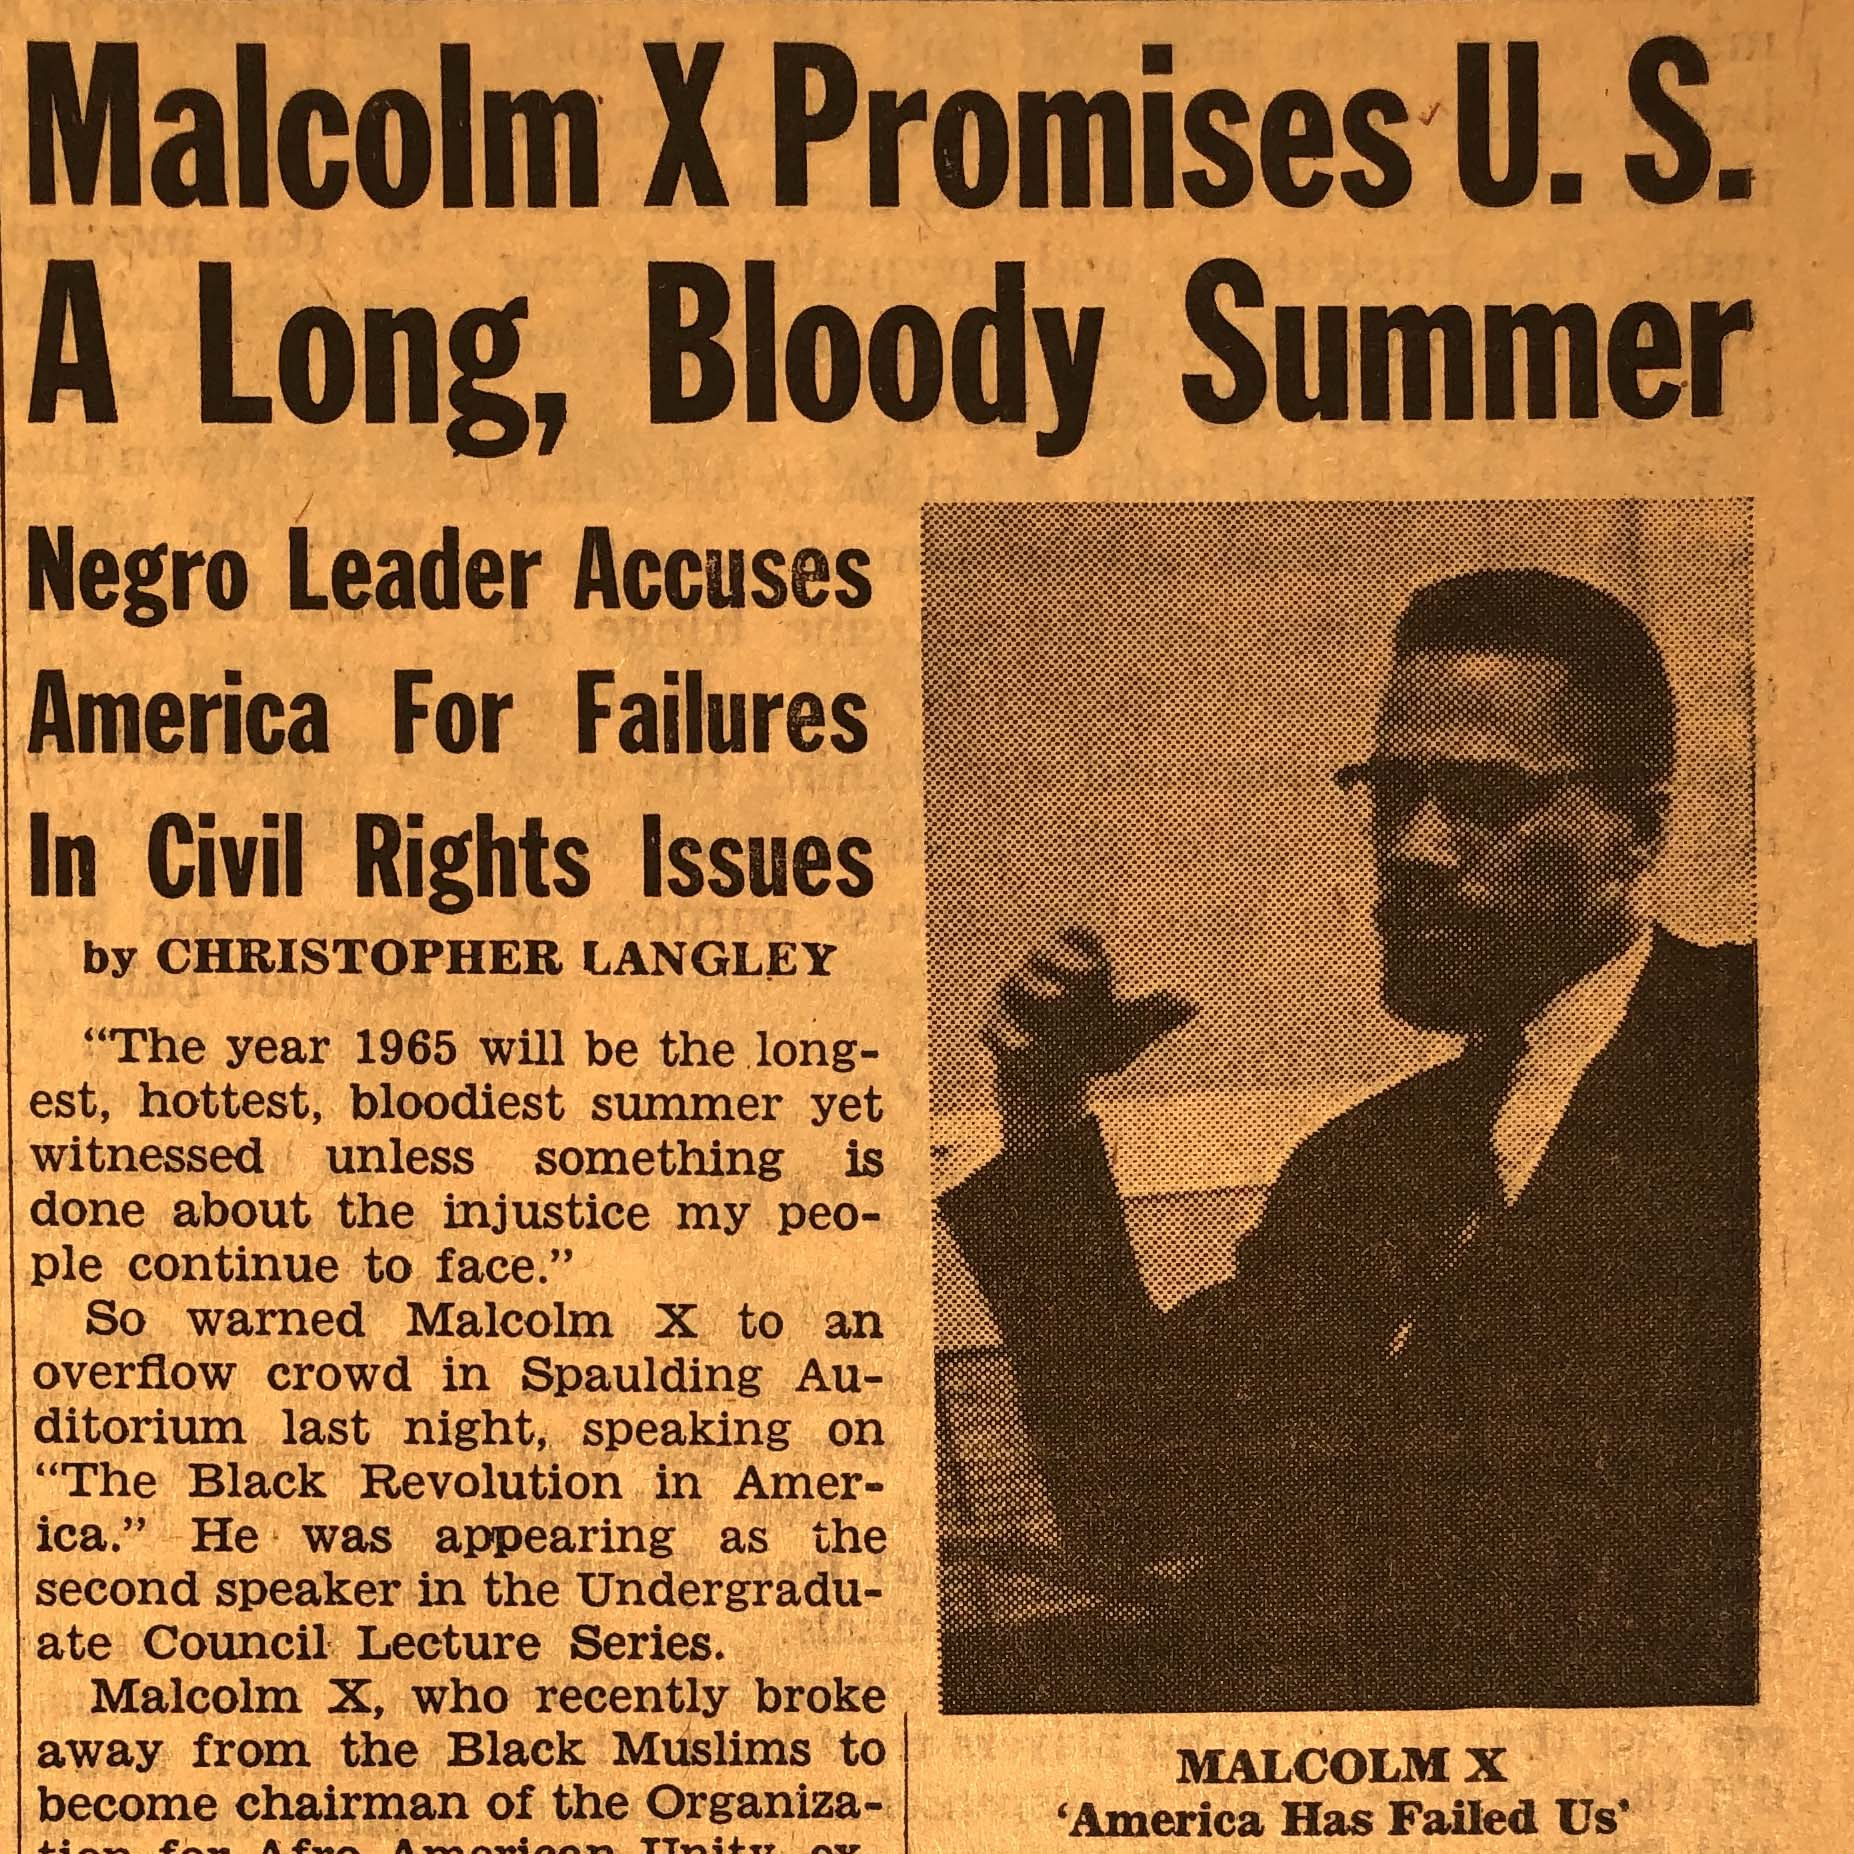 """Published a day after Malcolm X's Dartmouth address, """"The Black Revolution in America,"""" this article by Christopher Langley summarizes the main points Malcolm made regarding race relations. Malcolm emphasized the international nature of the """"race problem,"""" the importance of concentrating on areas of accord between U.S. freedom movements, the influence of African nationalism in strengthening the Black revolution in America, and the role of biased press and """"a racist government in Washington"""" in the failure to resolve Civil Rights issues."""